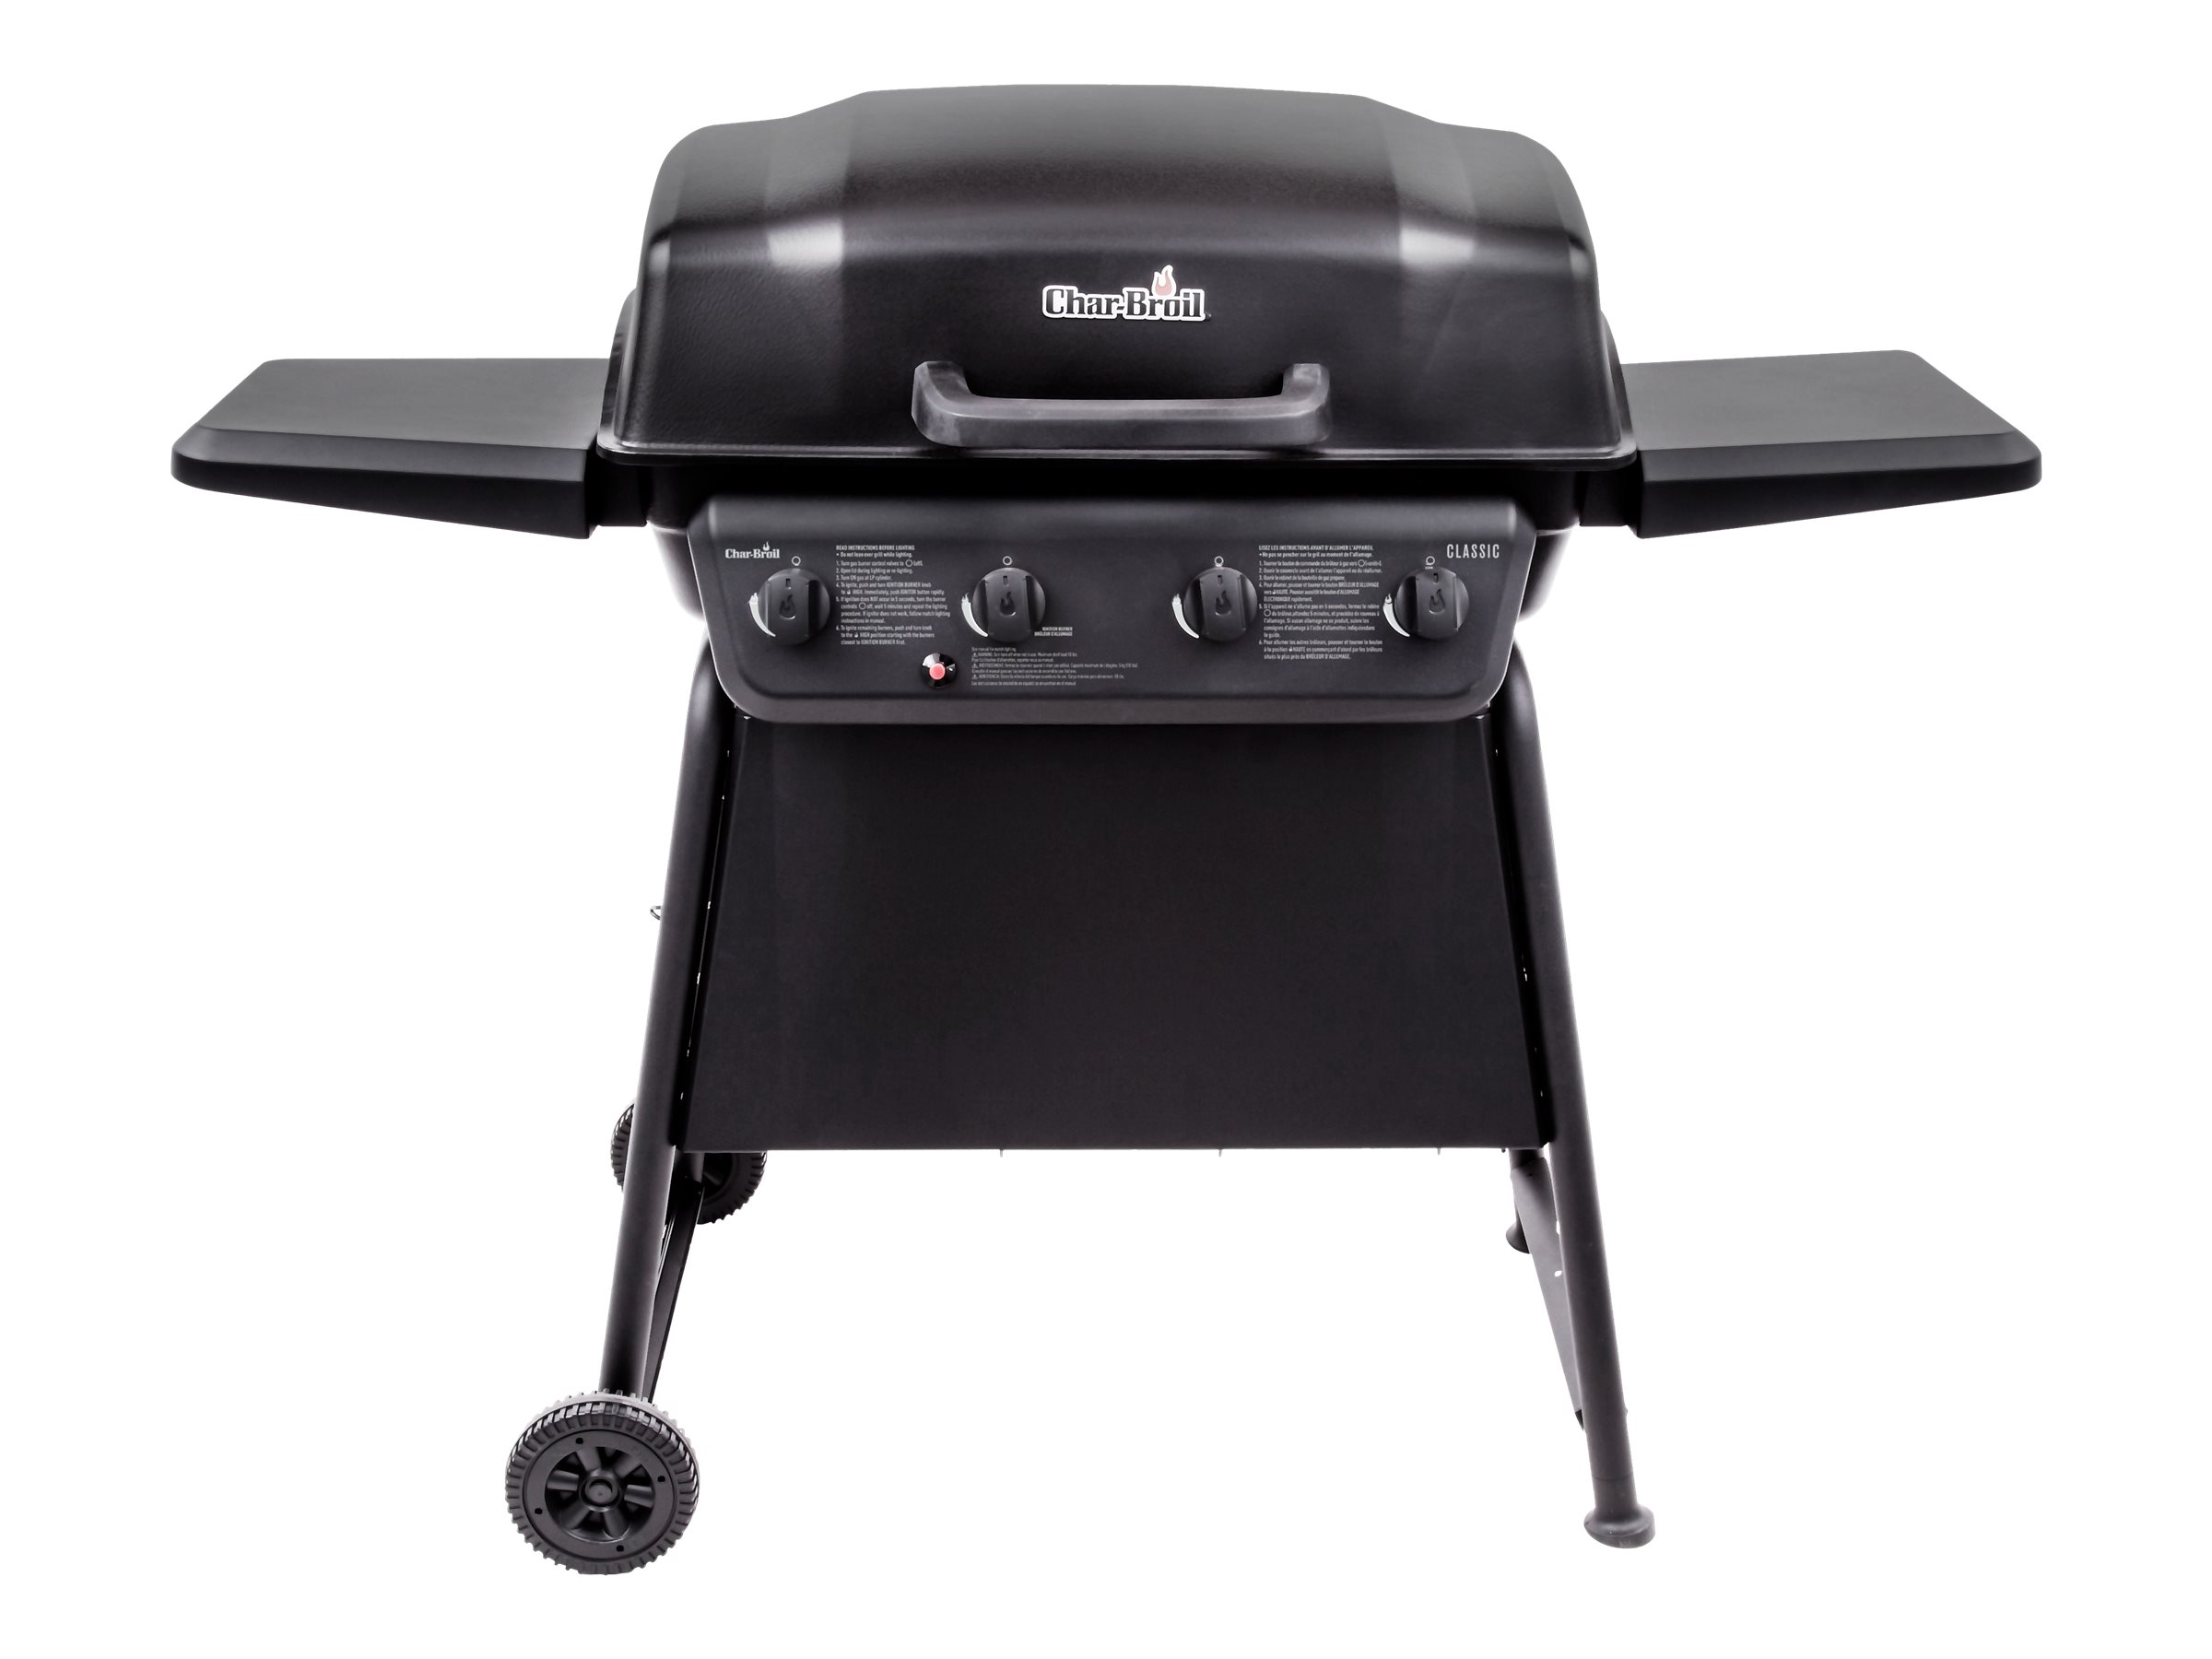 Image for Char-Broil Classic - Barbeque Grill - Black from Circuit City